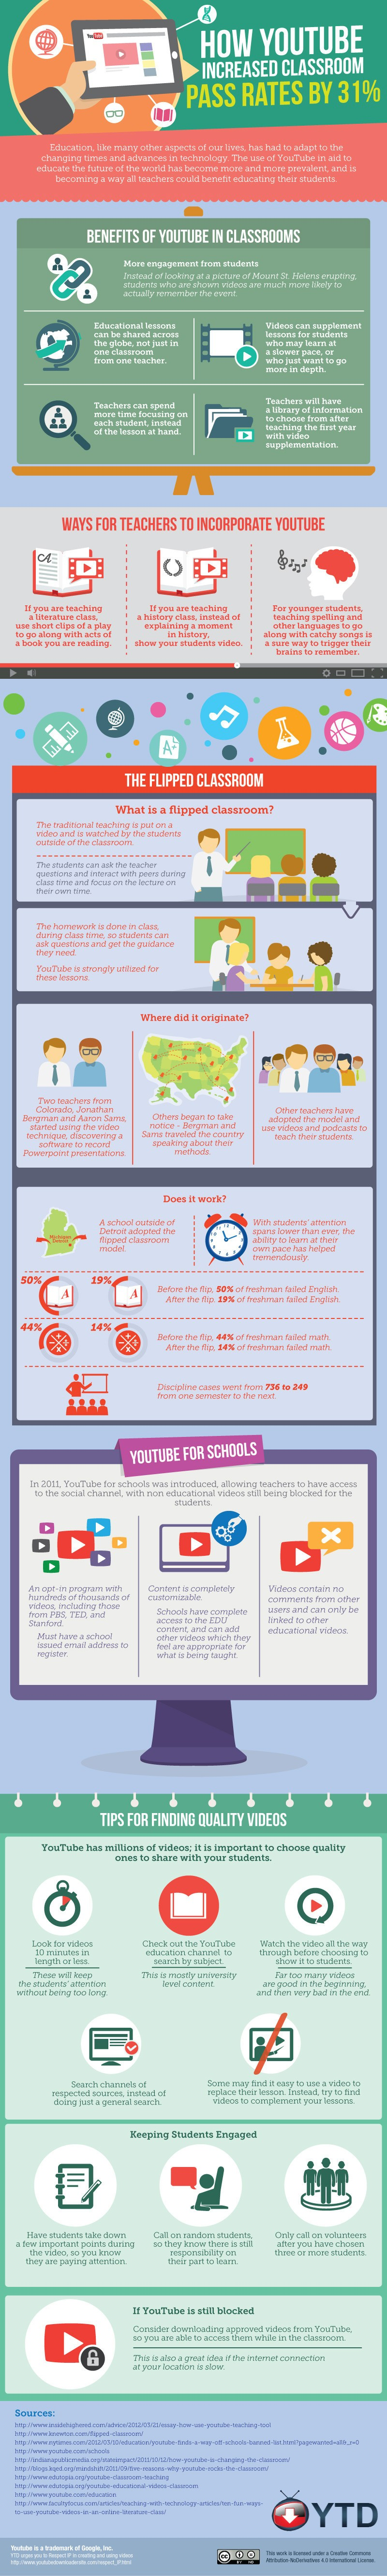 How-YouTube-Increases-Classroom-Pass-Rates-Infographic